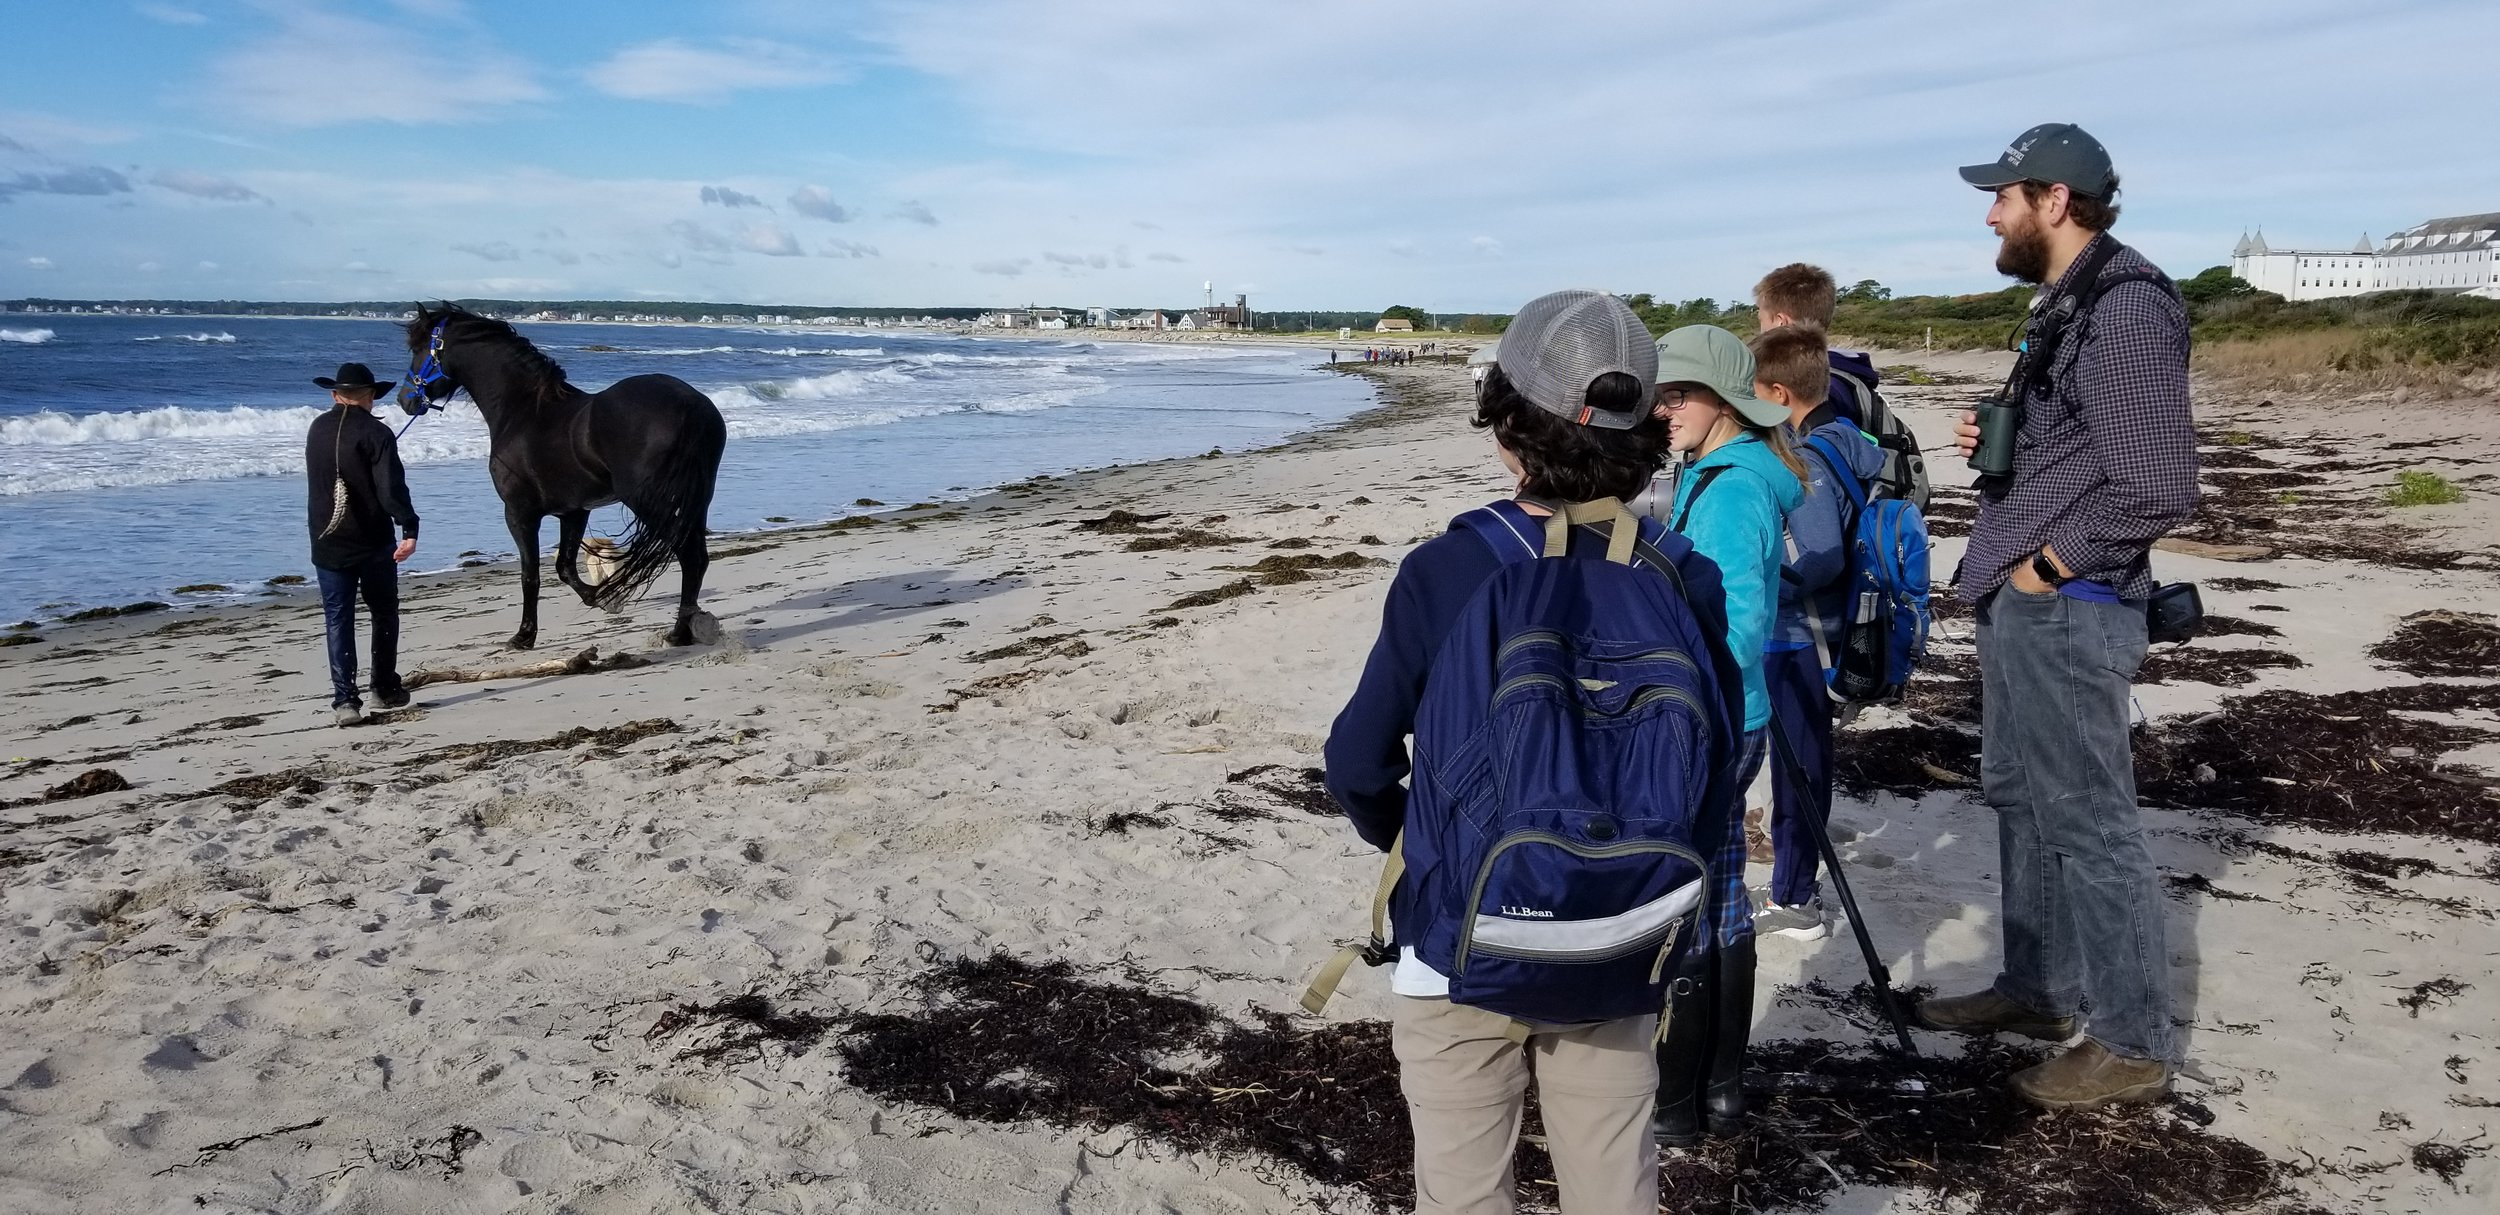 We were a bit puzzled by the horse on the beach.